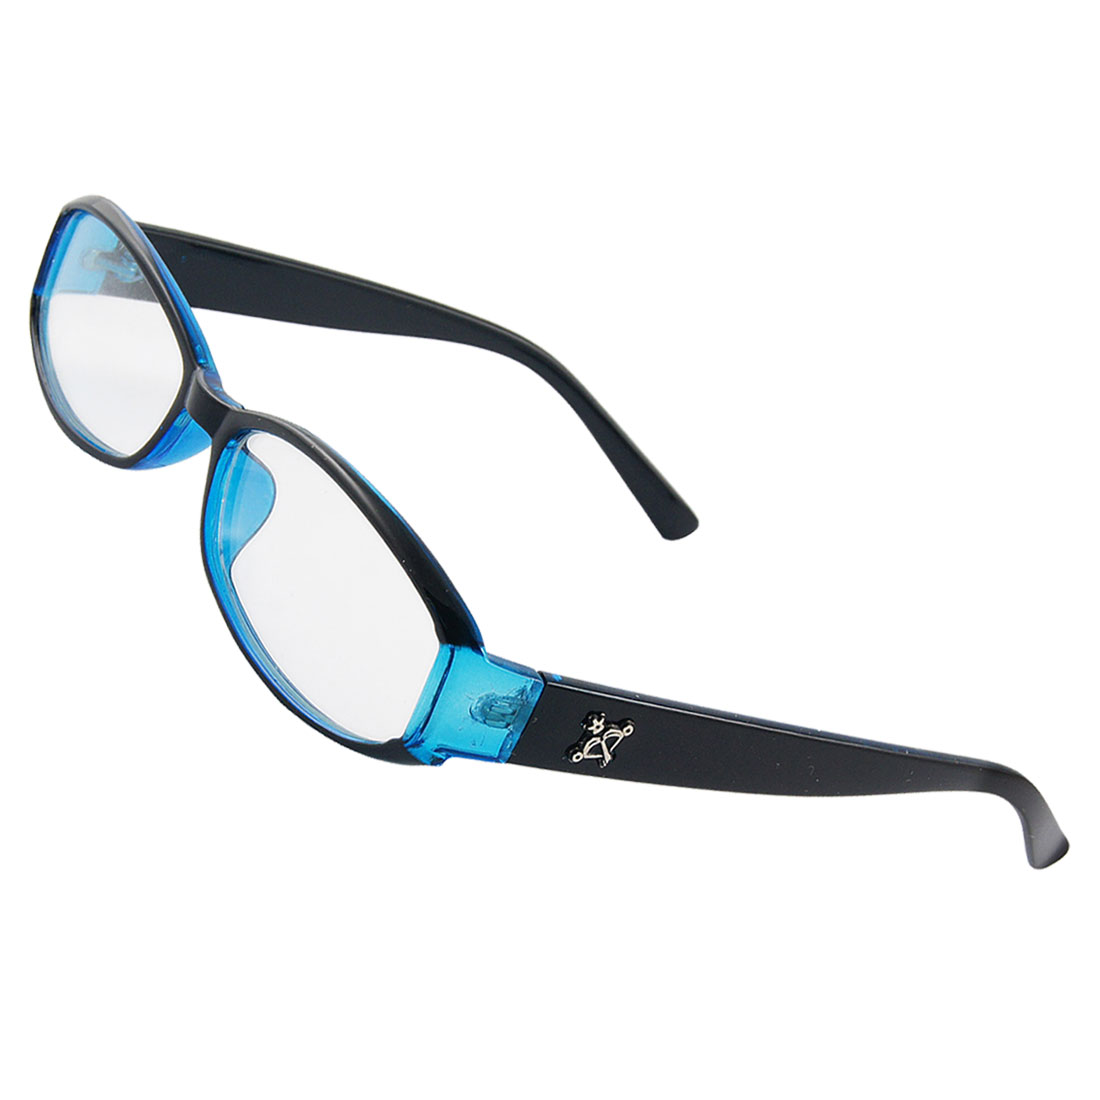 Lady Clear Lens Trophy Inlaid Arms Black Blue Plastic Plain Glasses